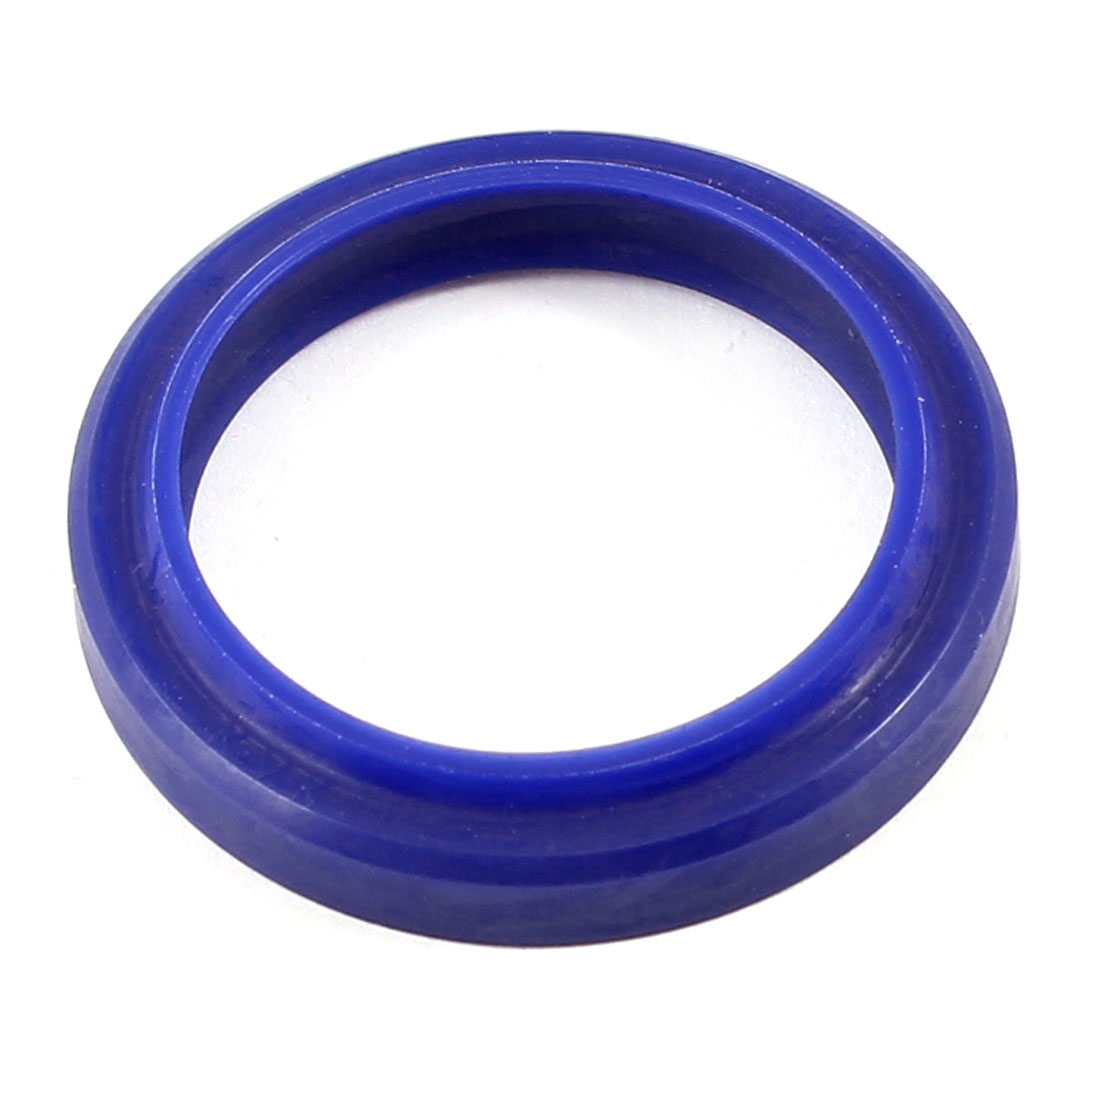 38mm x 30mm x 4mm Rubber O Shaped Sealed Ring Oil Seal Gasket Blue